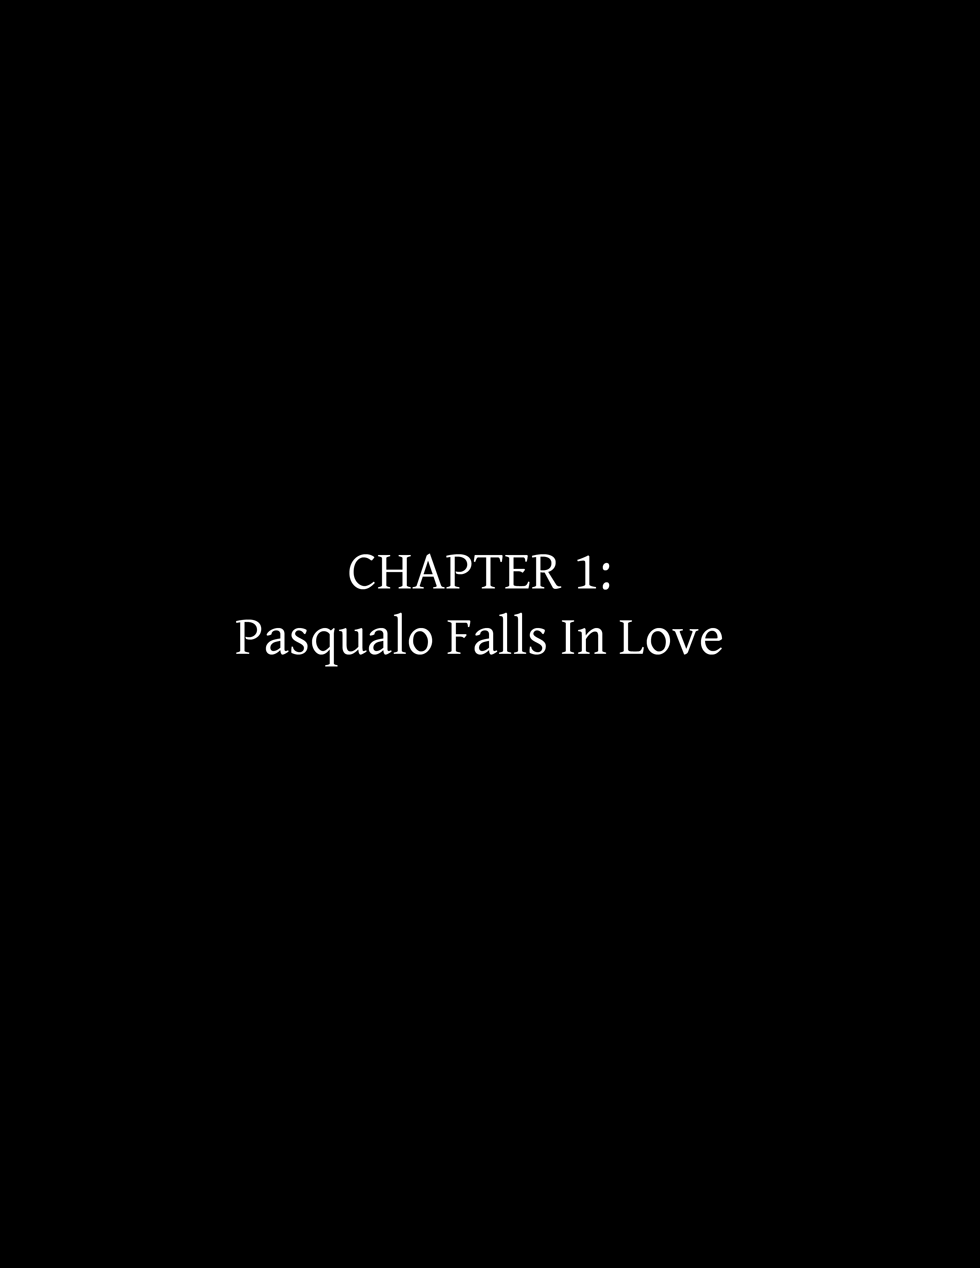 Chapter 1: Pasqualo Falls In Love